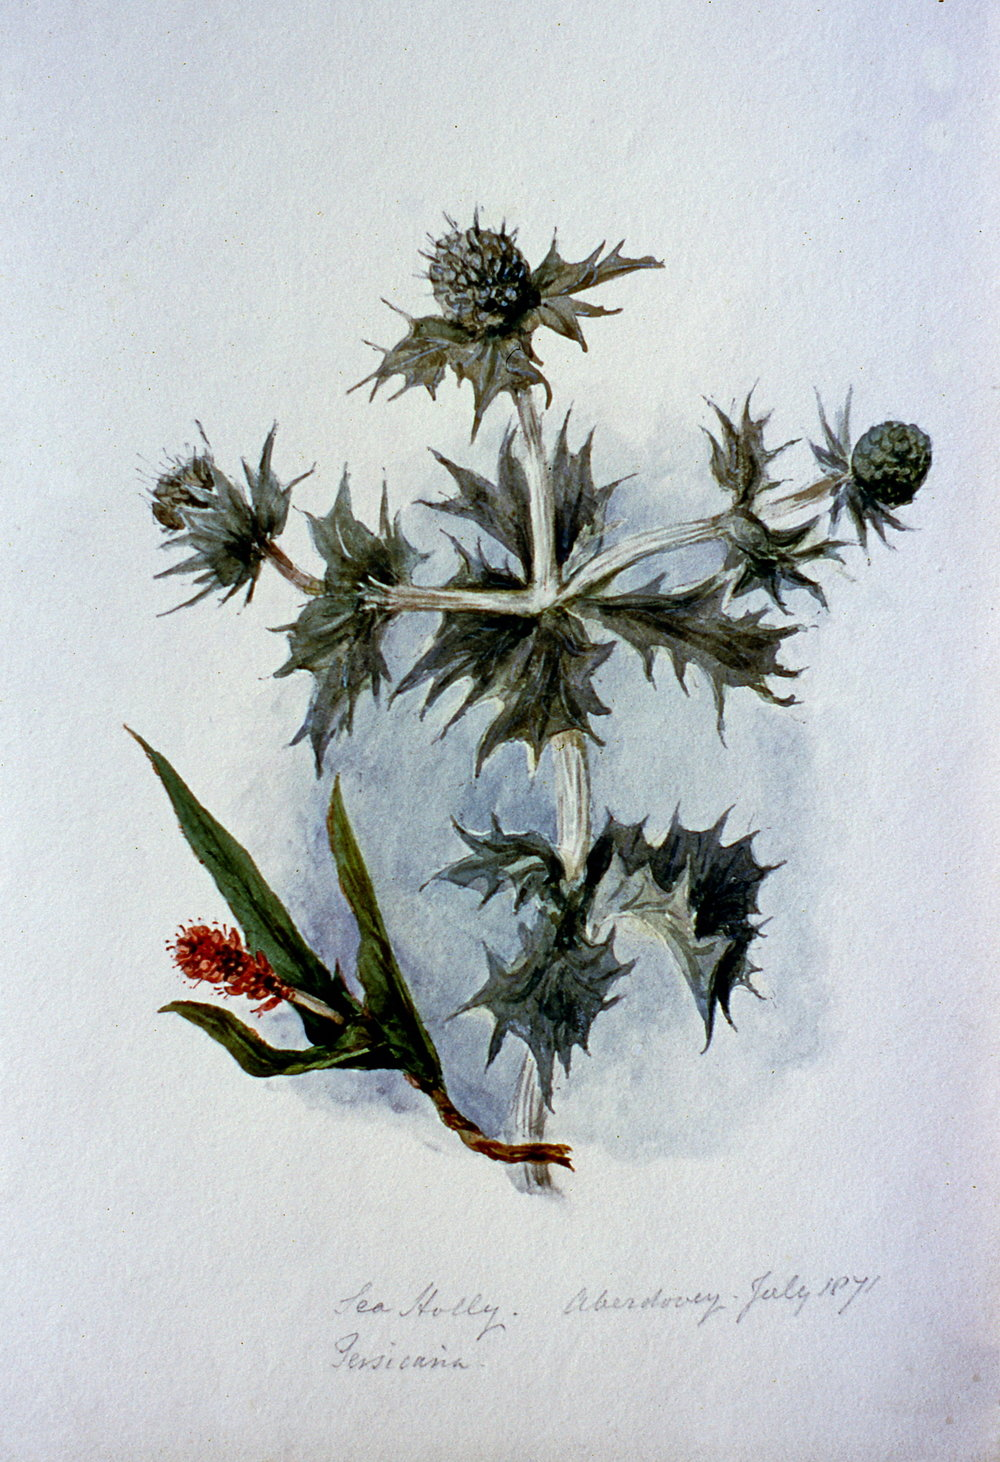 Tea Holly and Persicanna Aberdovey , July 1871, Julia Bullock Webster, watercolour on paper, 28 cm x 18.5 cm, 2003.02.04, gift of The Grist Mill at Keremeos